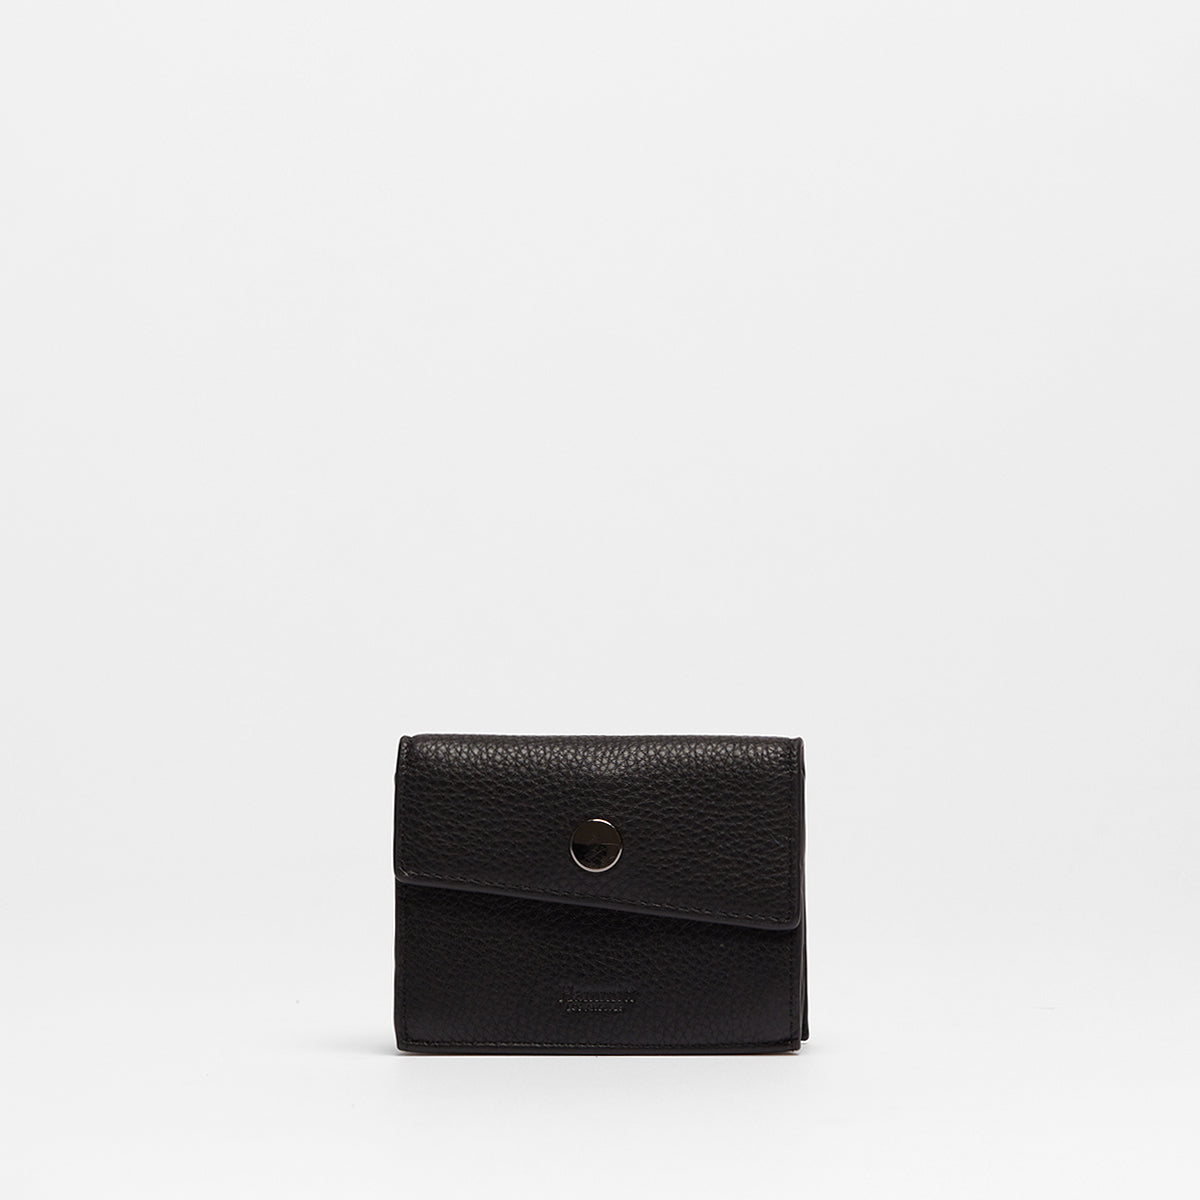 Montana-Pocket-Black-Front-View